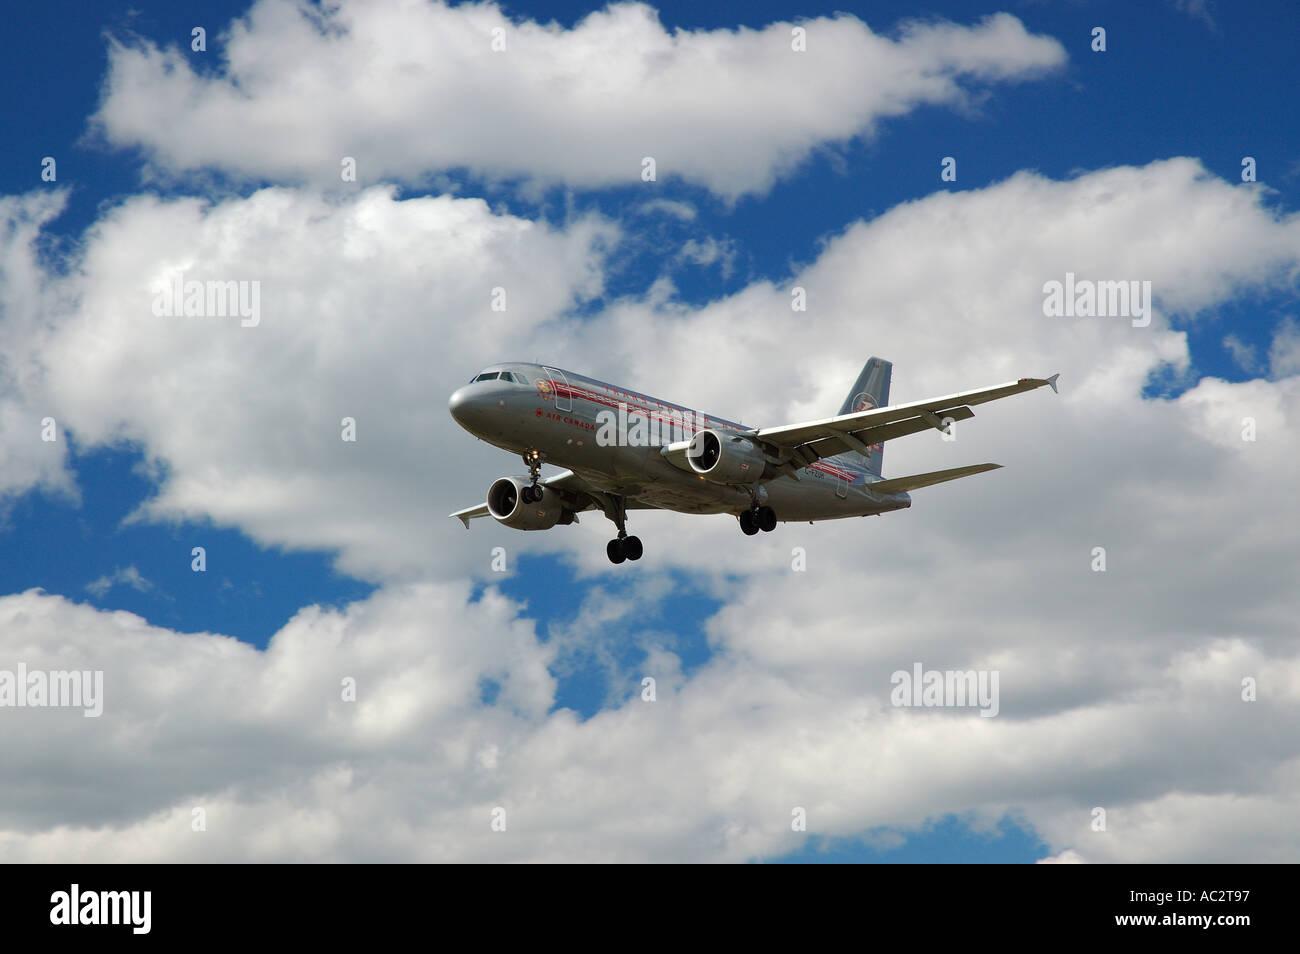 Classic Air Canada Trans Canada Airlines jet flying in clouds - Stock Image